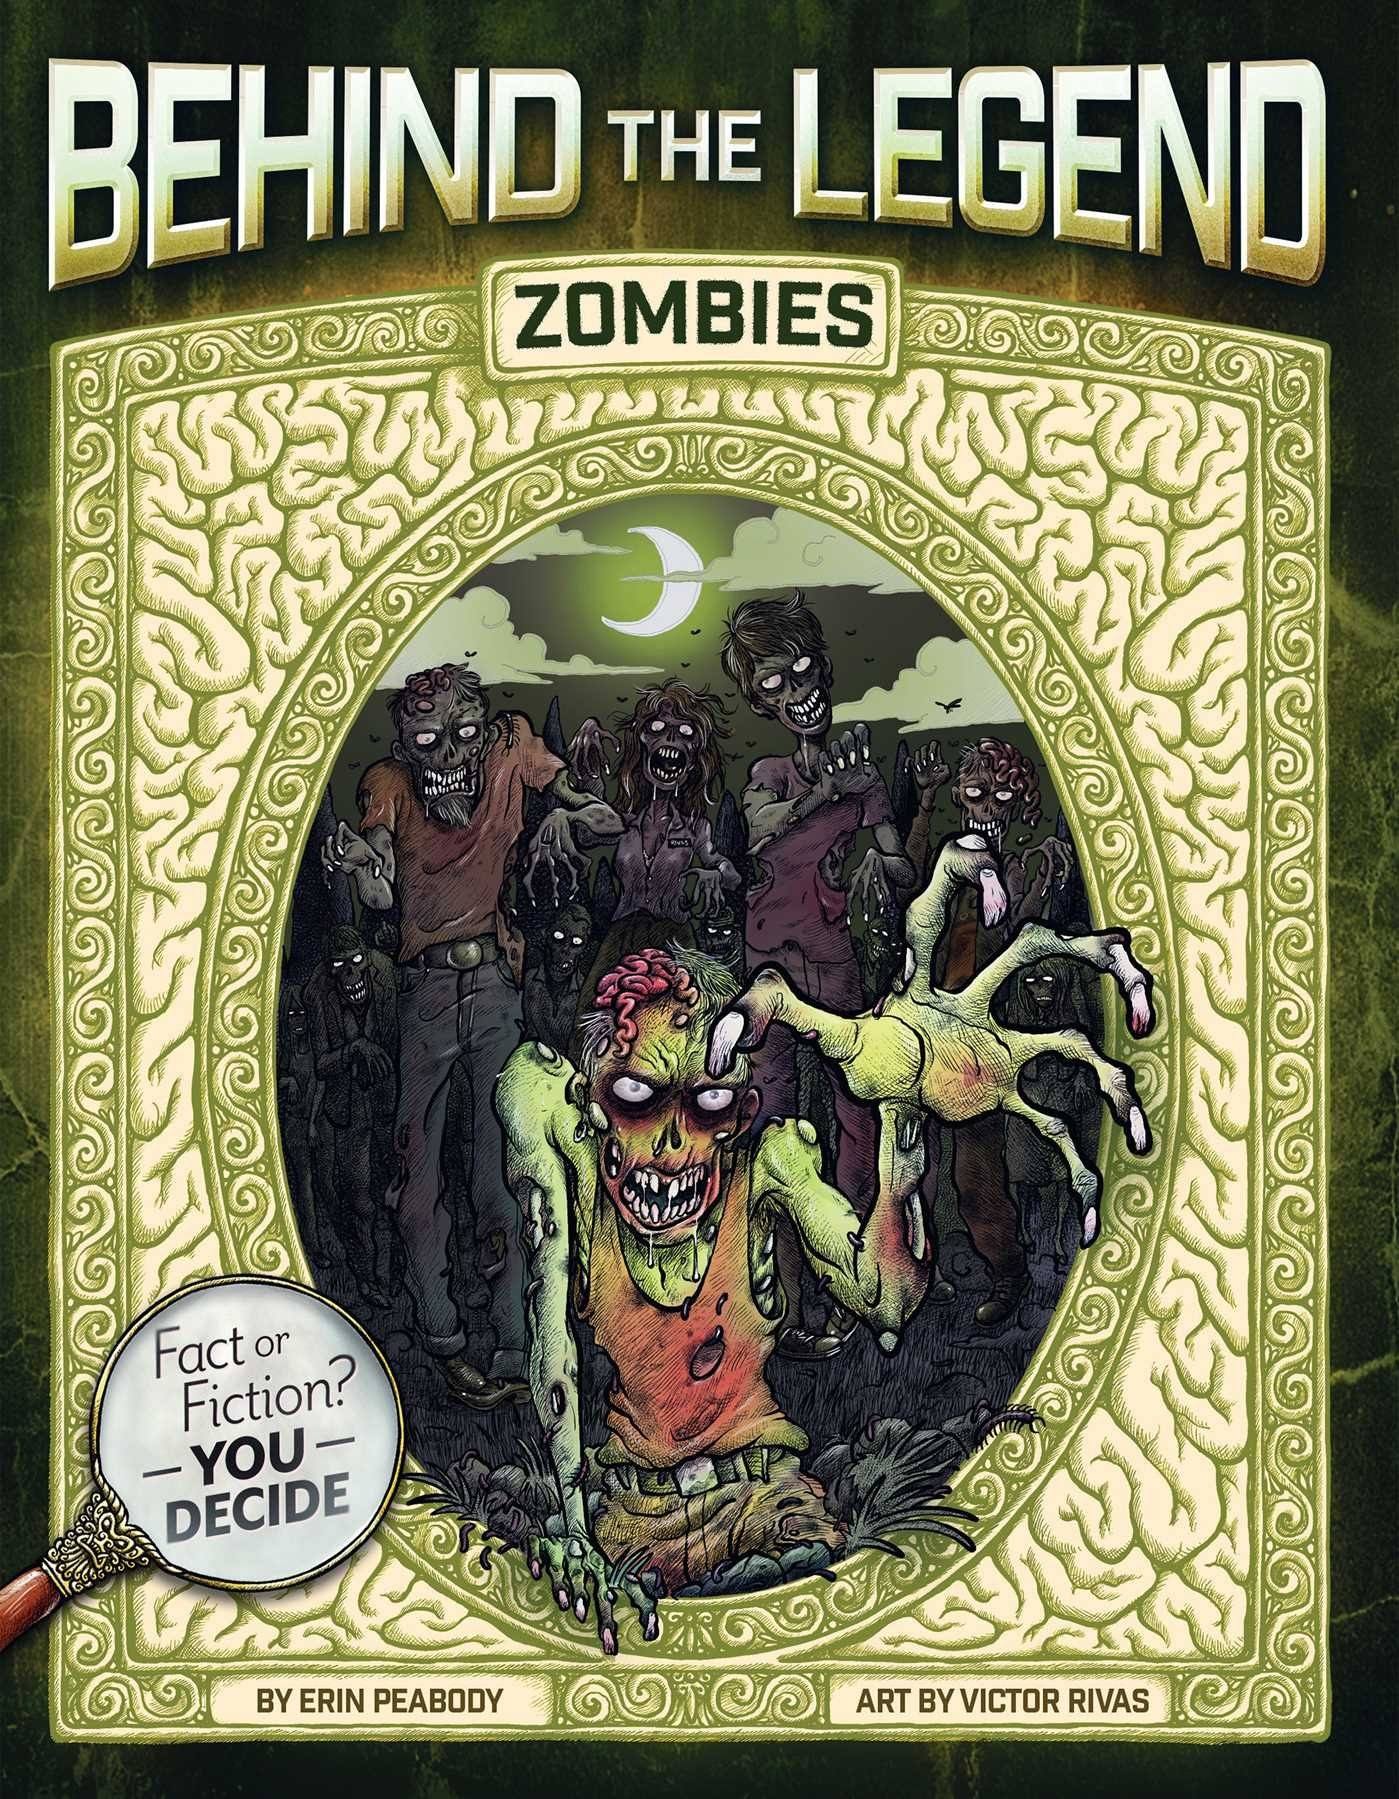 btl zombies - Behind the Legend Book Series Perfect Intro to Horror for Kids